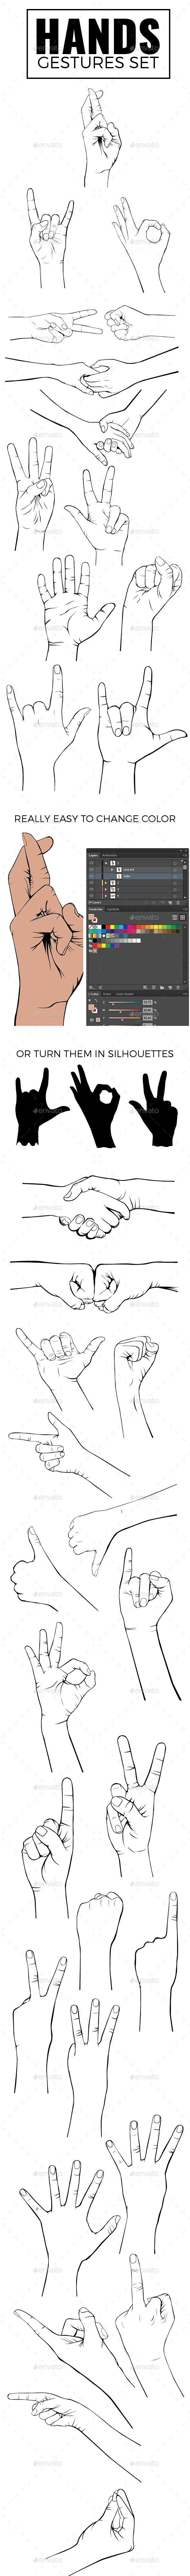 Realistic Hands Gesture Set and Silhouettes - People Characters